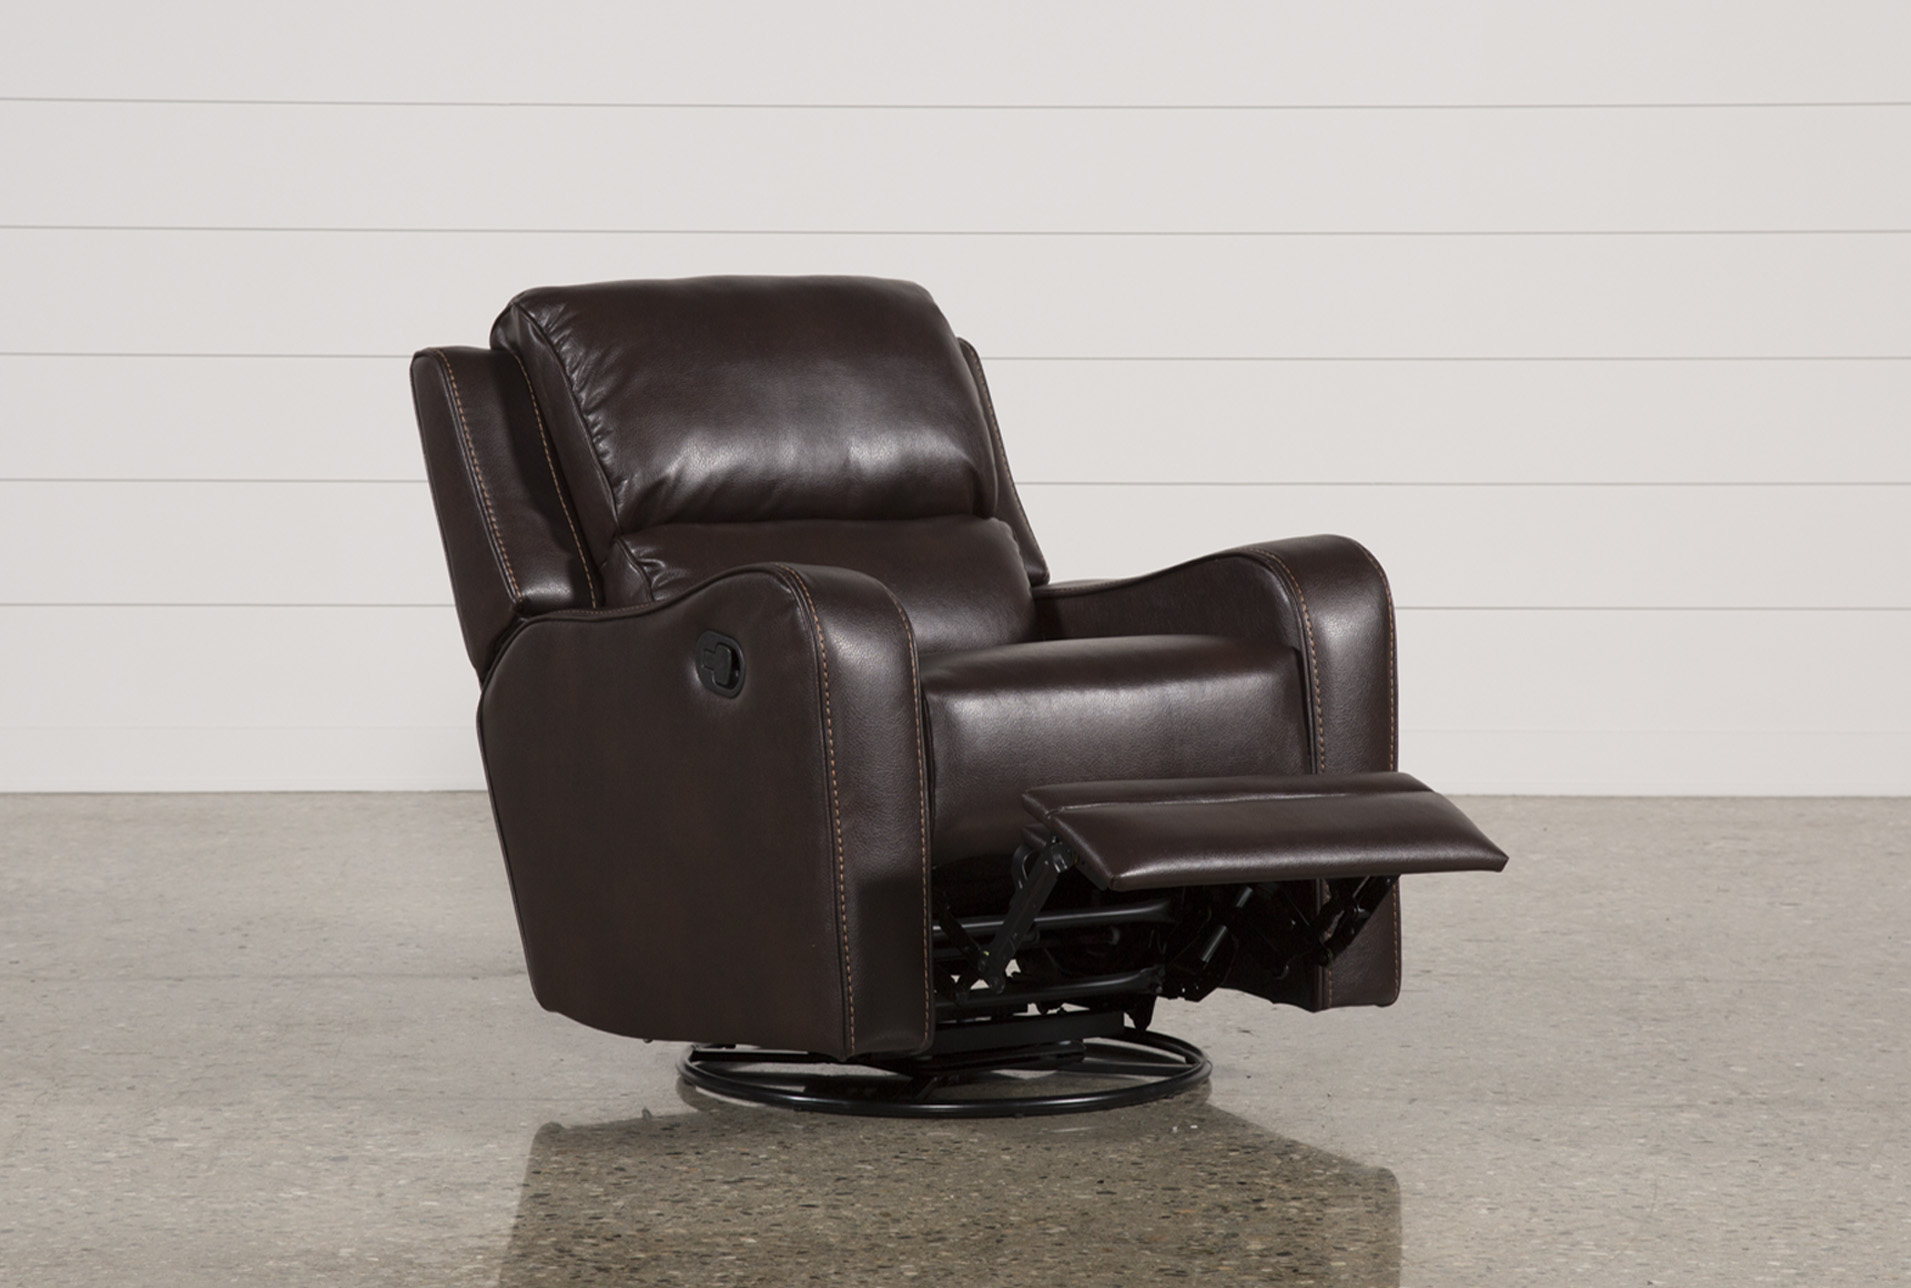 Scorpio Brown Swivel Glider Recliner In 2018 | Products | Pinterest With Regard To Kawai Leather Swivel Chairs (Image 19 of 25)